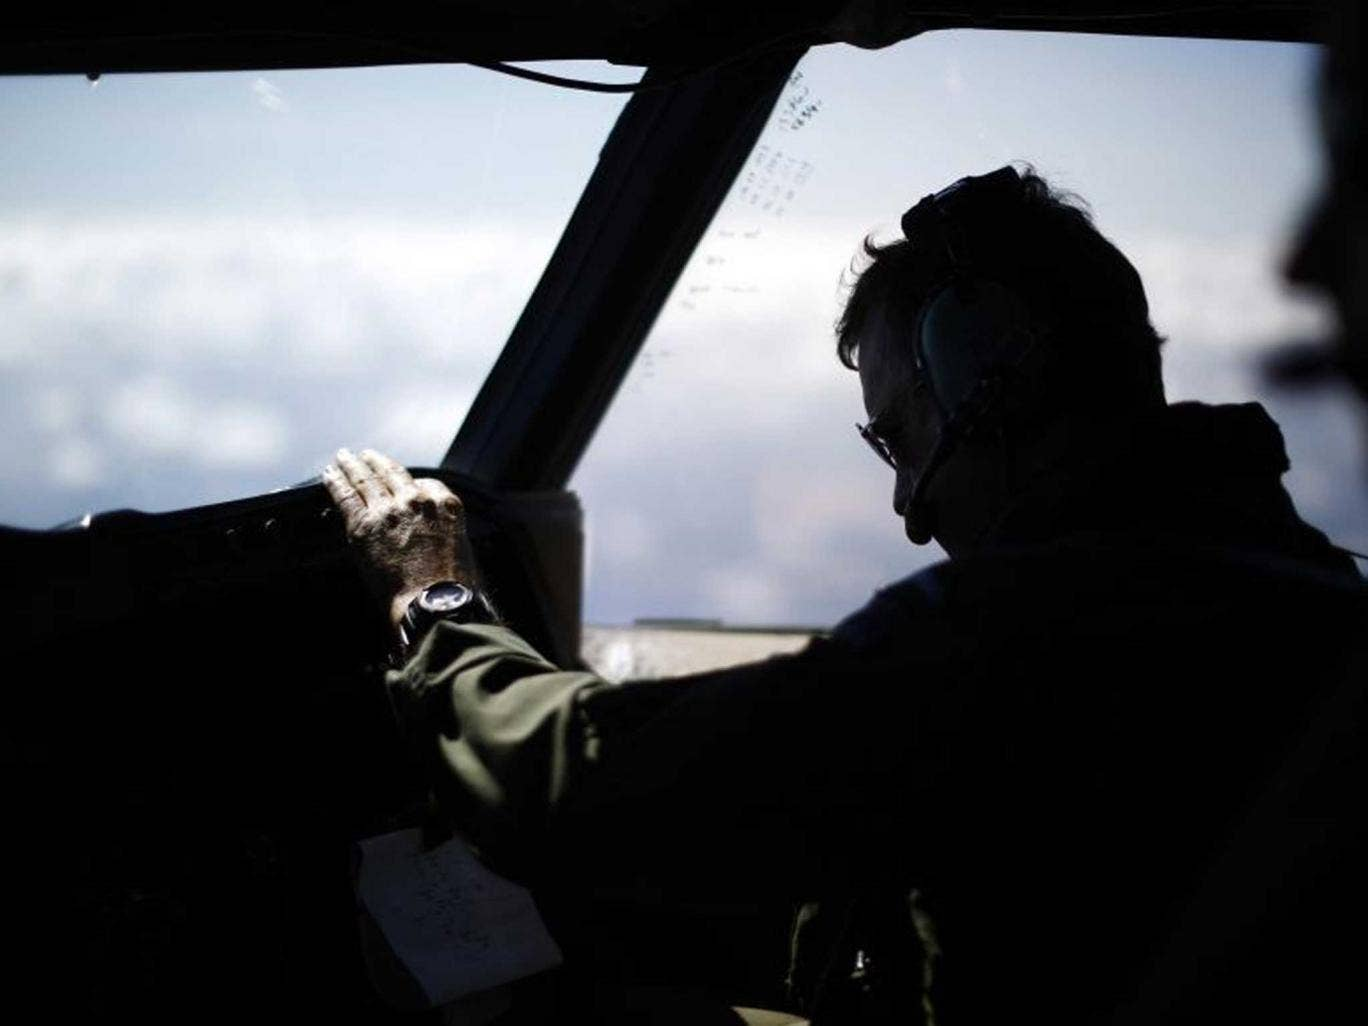 Experts have warned the search for the missing plane will not be easy